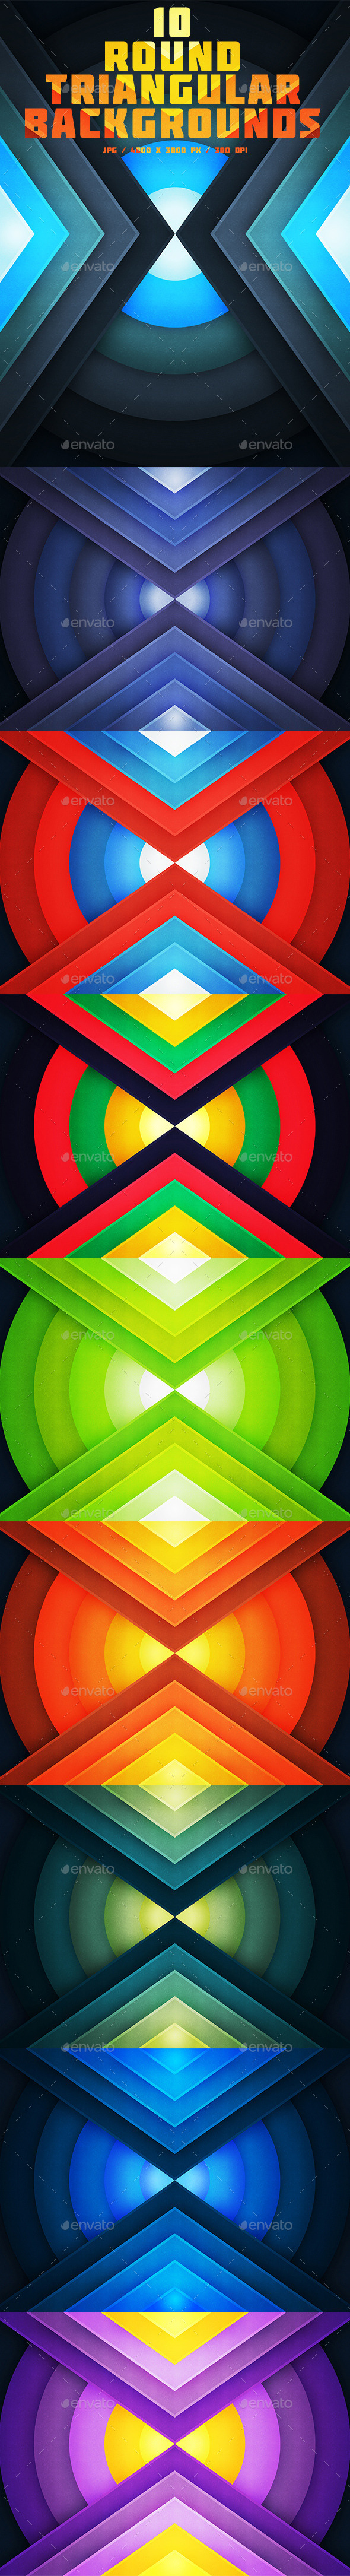 10 Round Triangular Backgrounds